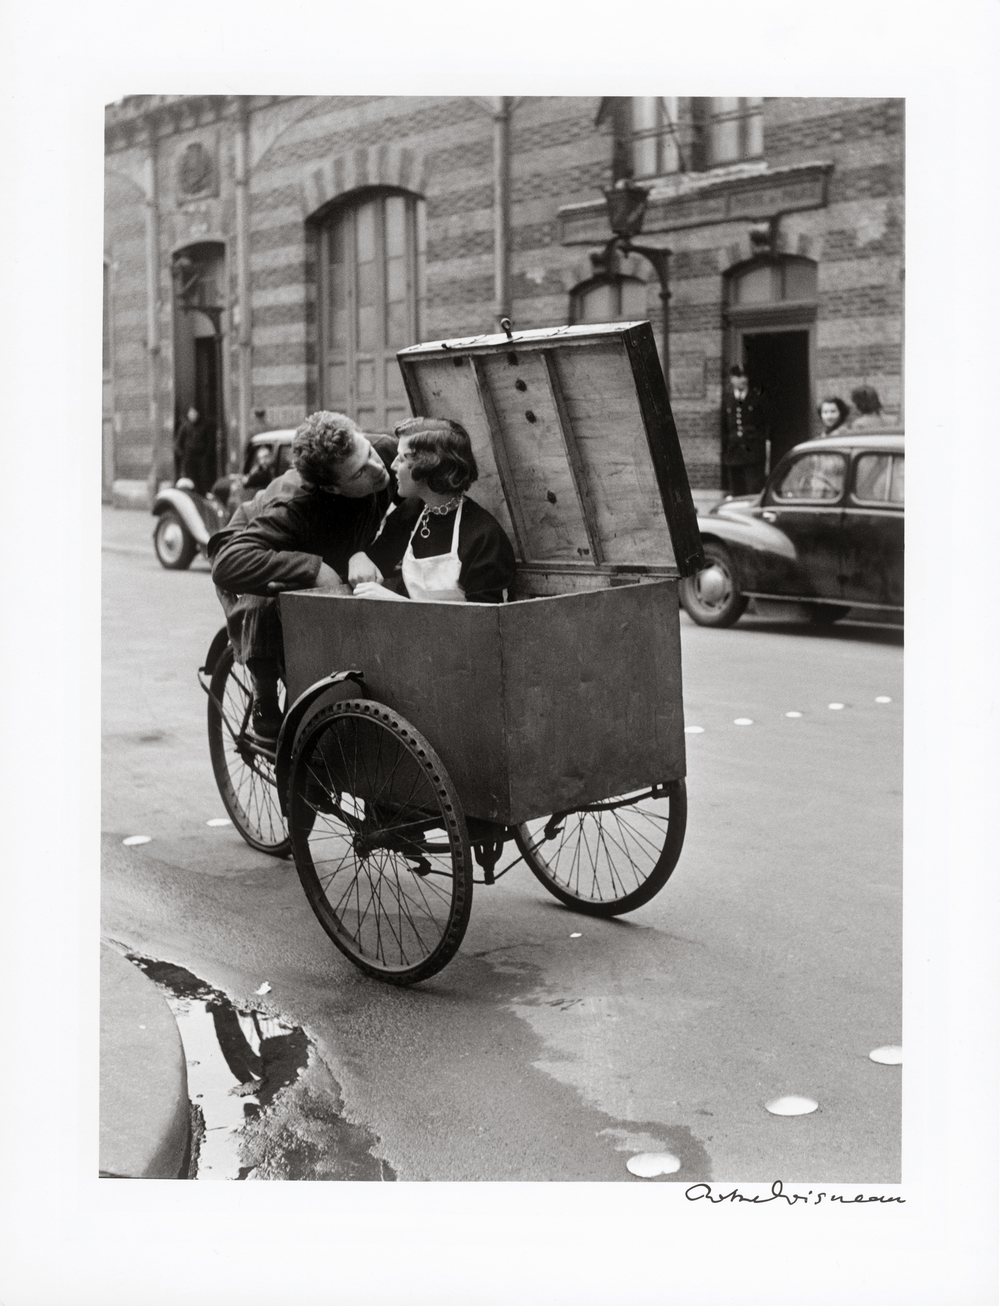 Robert Doisneau made this photograph in 1950 as a commission from Life Magazine to promote Paris as the city of Love. Love it is, as I loved Doisneau dearly and was with him on his 90th birthday in Oxford.UK. The print I have owned for 25+ years, it is much older than that ... having taken it to America during my 5 year stint @ Savannah GA College.    IT HAS BEEN A TOTAL INSPIRATION TO MY CAREER AS A PHOTOGRAPHER/PROFESSOR.    This fine art print is signed, by Robert Doisneau on bottom right.THE PRINT is framed in a Hand Made frame with archival materials :: offered @ £7500